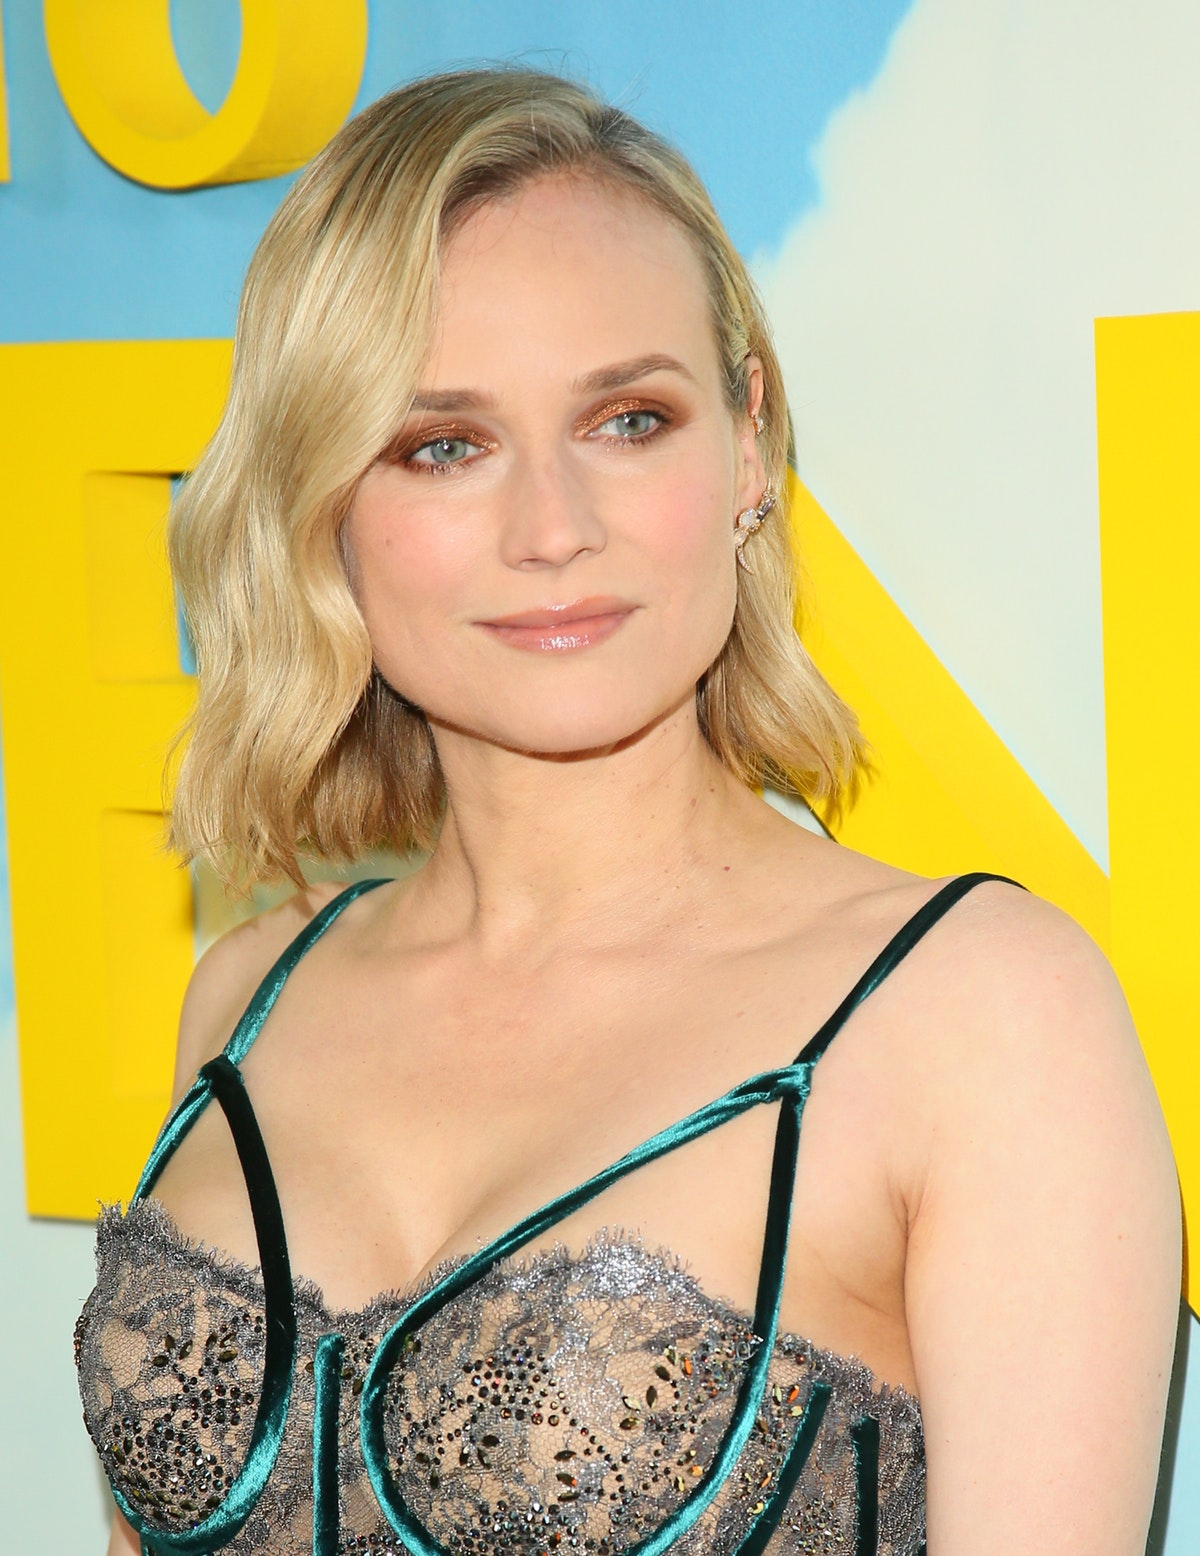 Diane Kruger Just Confirmed Her Daughter's Birth In The Most Relatable Way